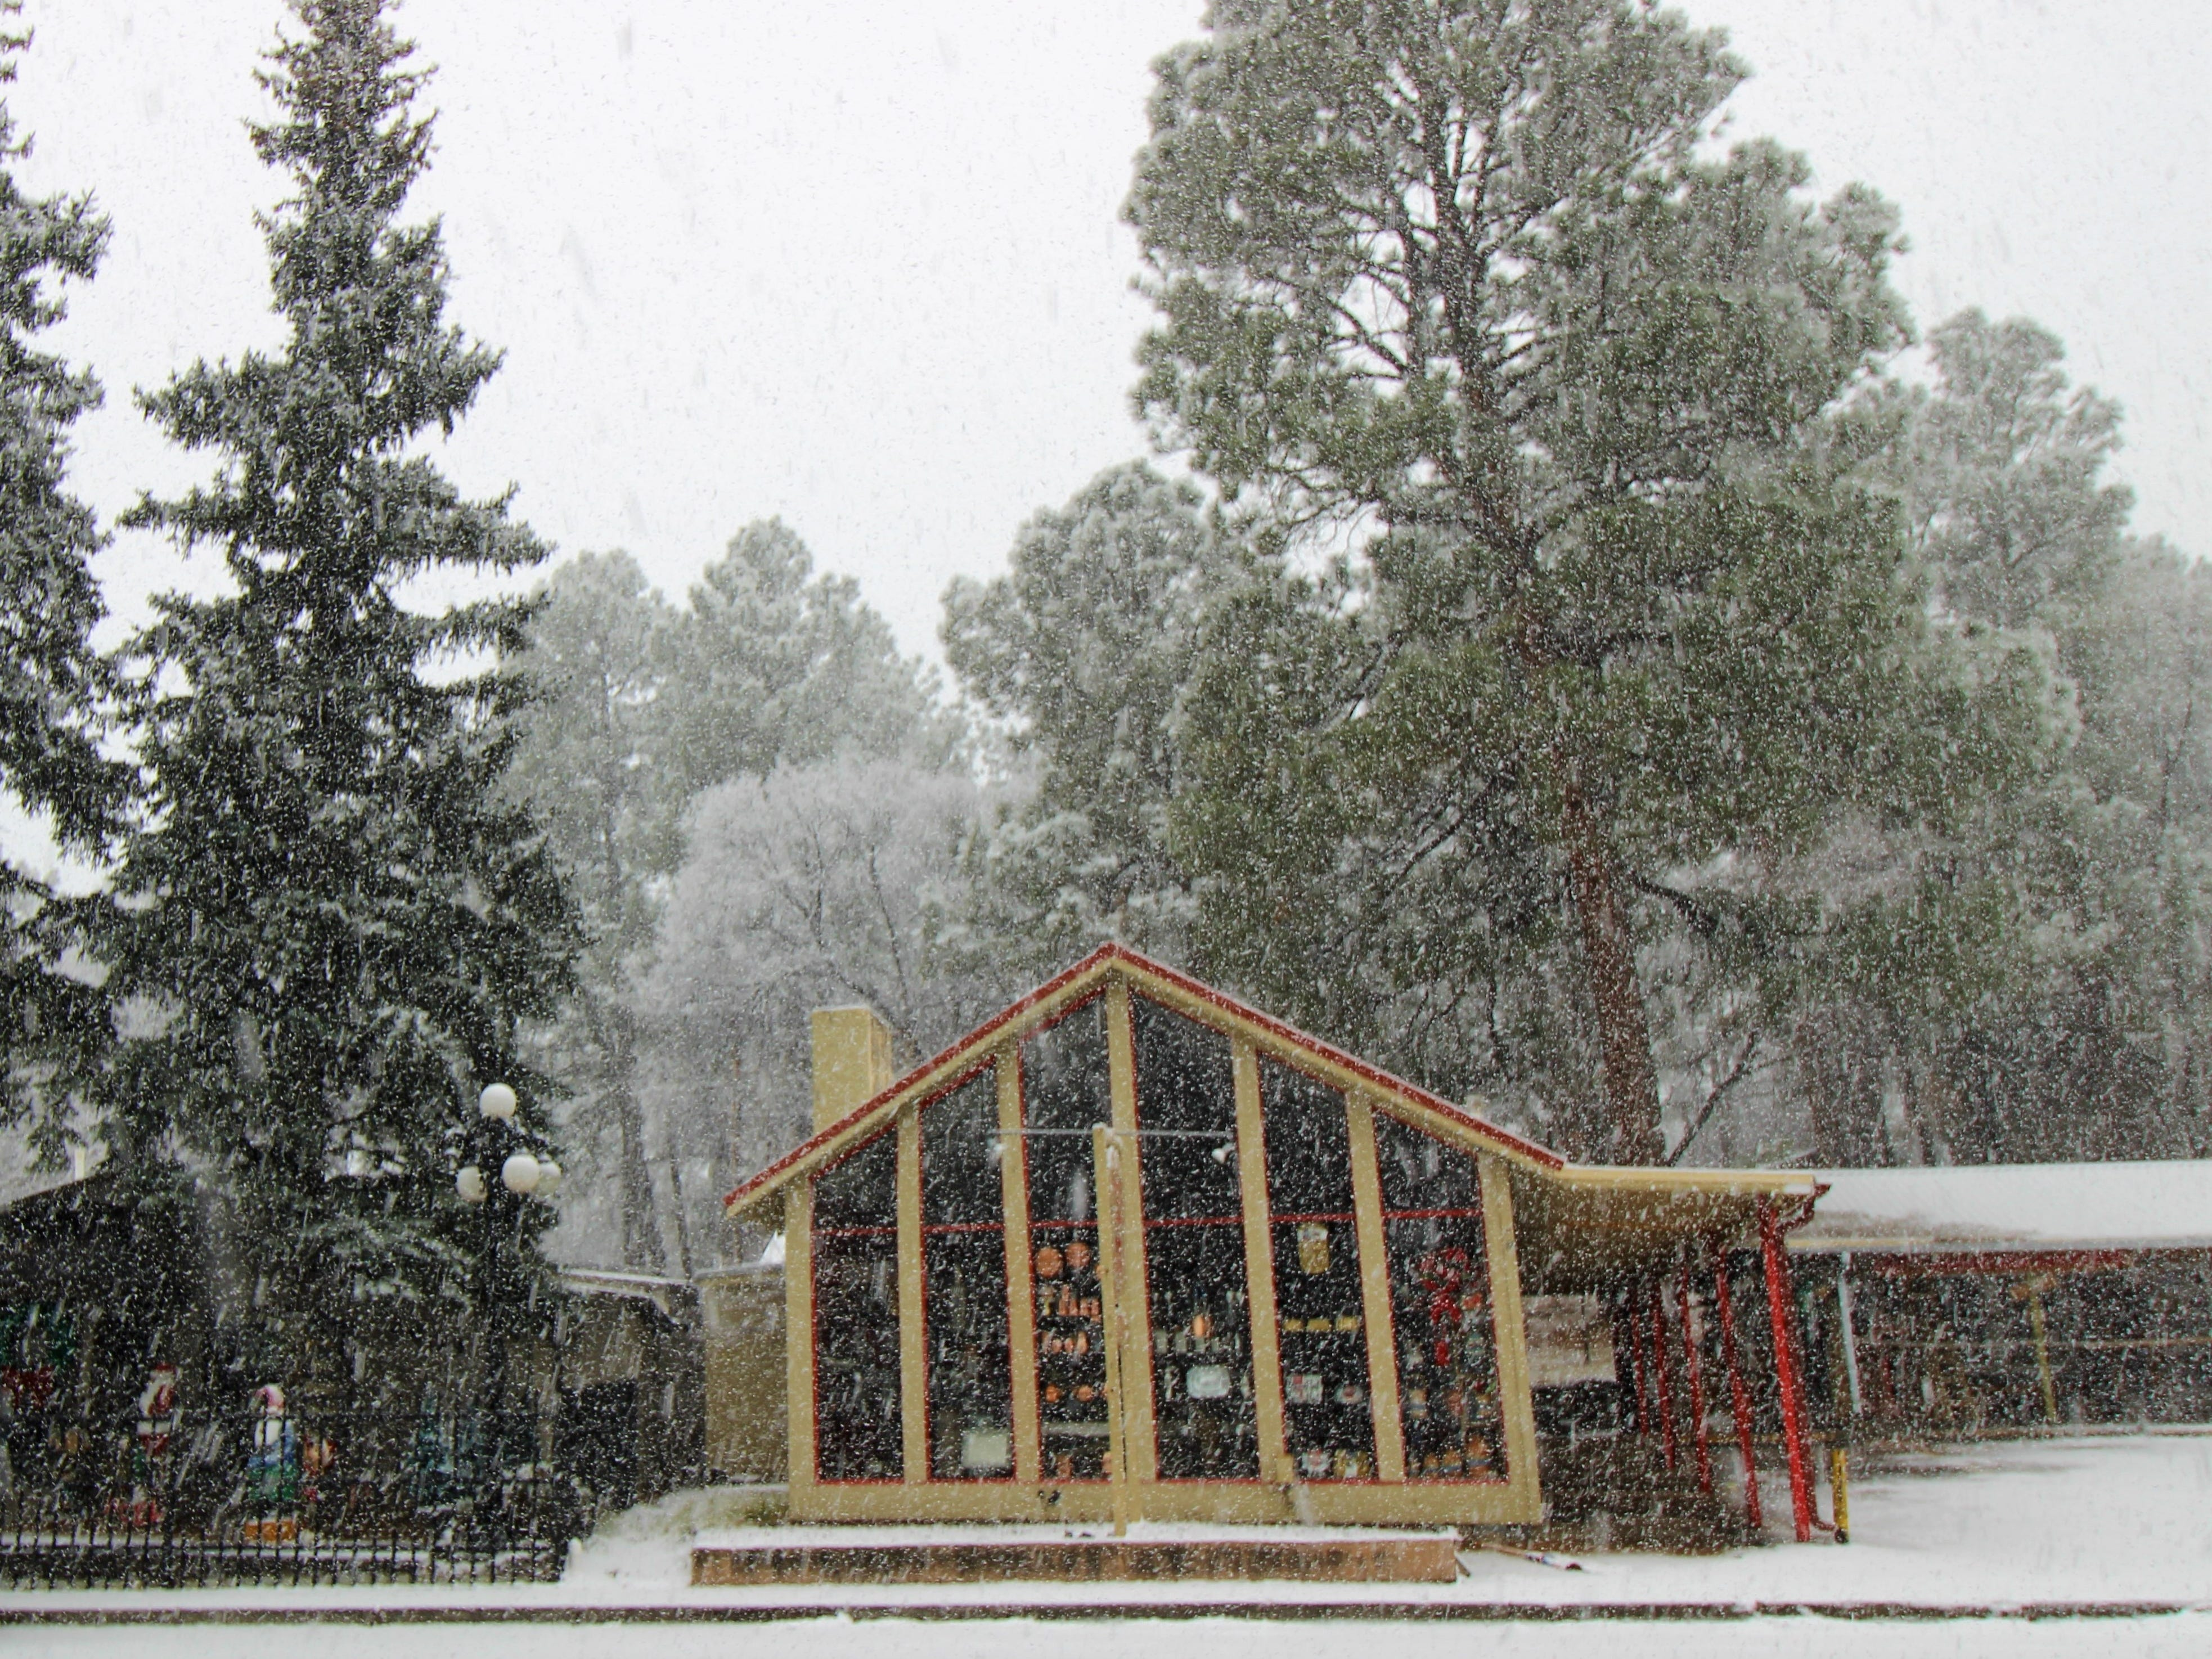 Midtown Ruidoso welcomed snowfall on Wednesday morning. The shops and Christmas decorations covered in snow added that special holiday feels while creating a winter wonderland.